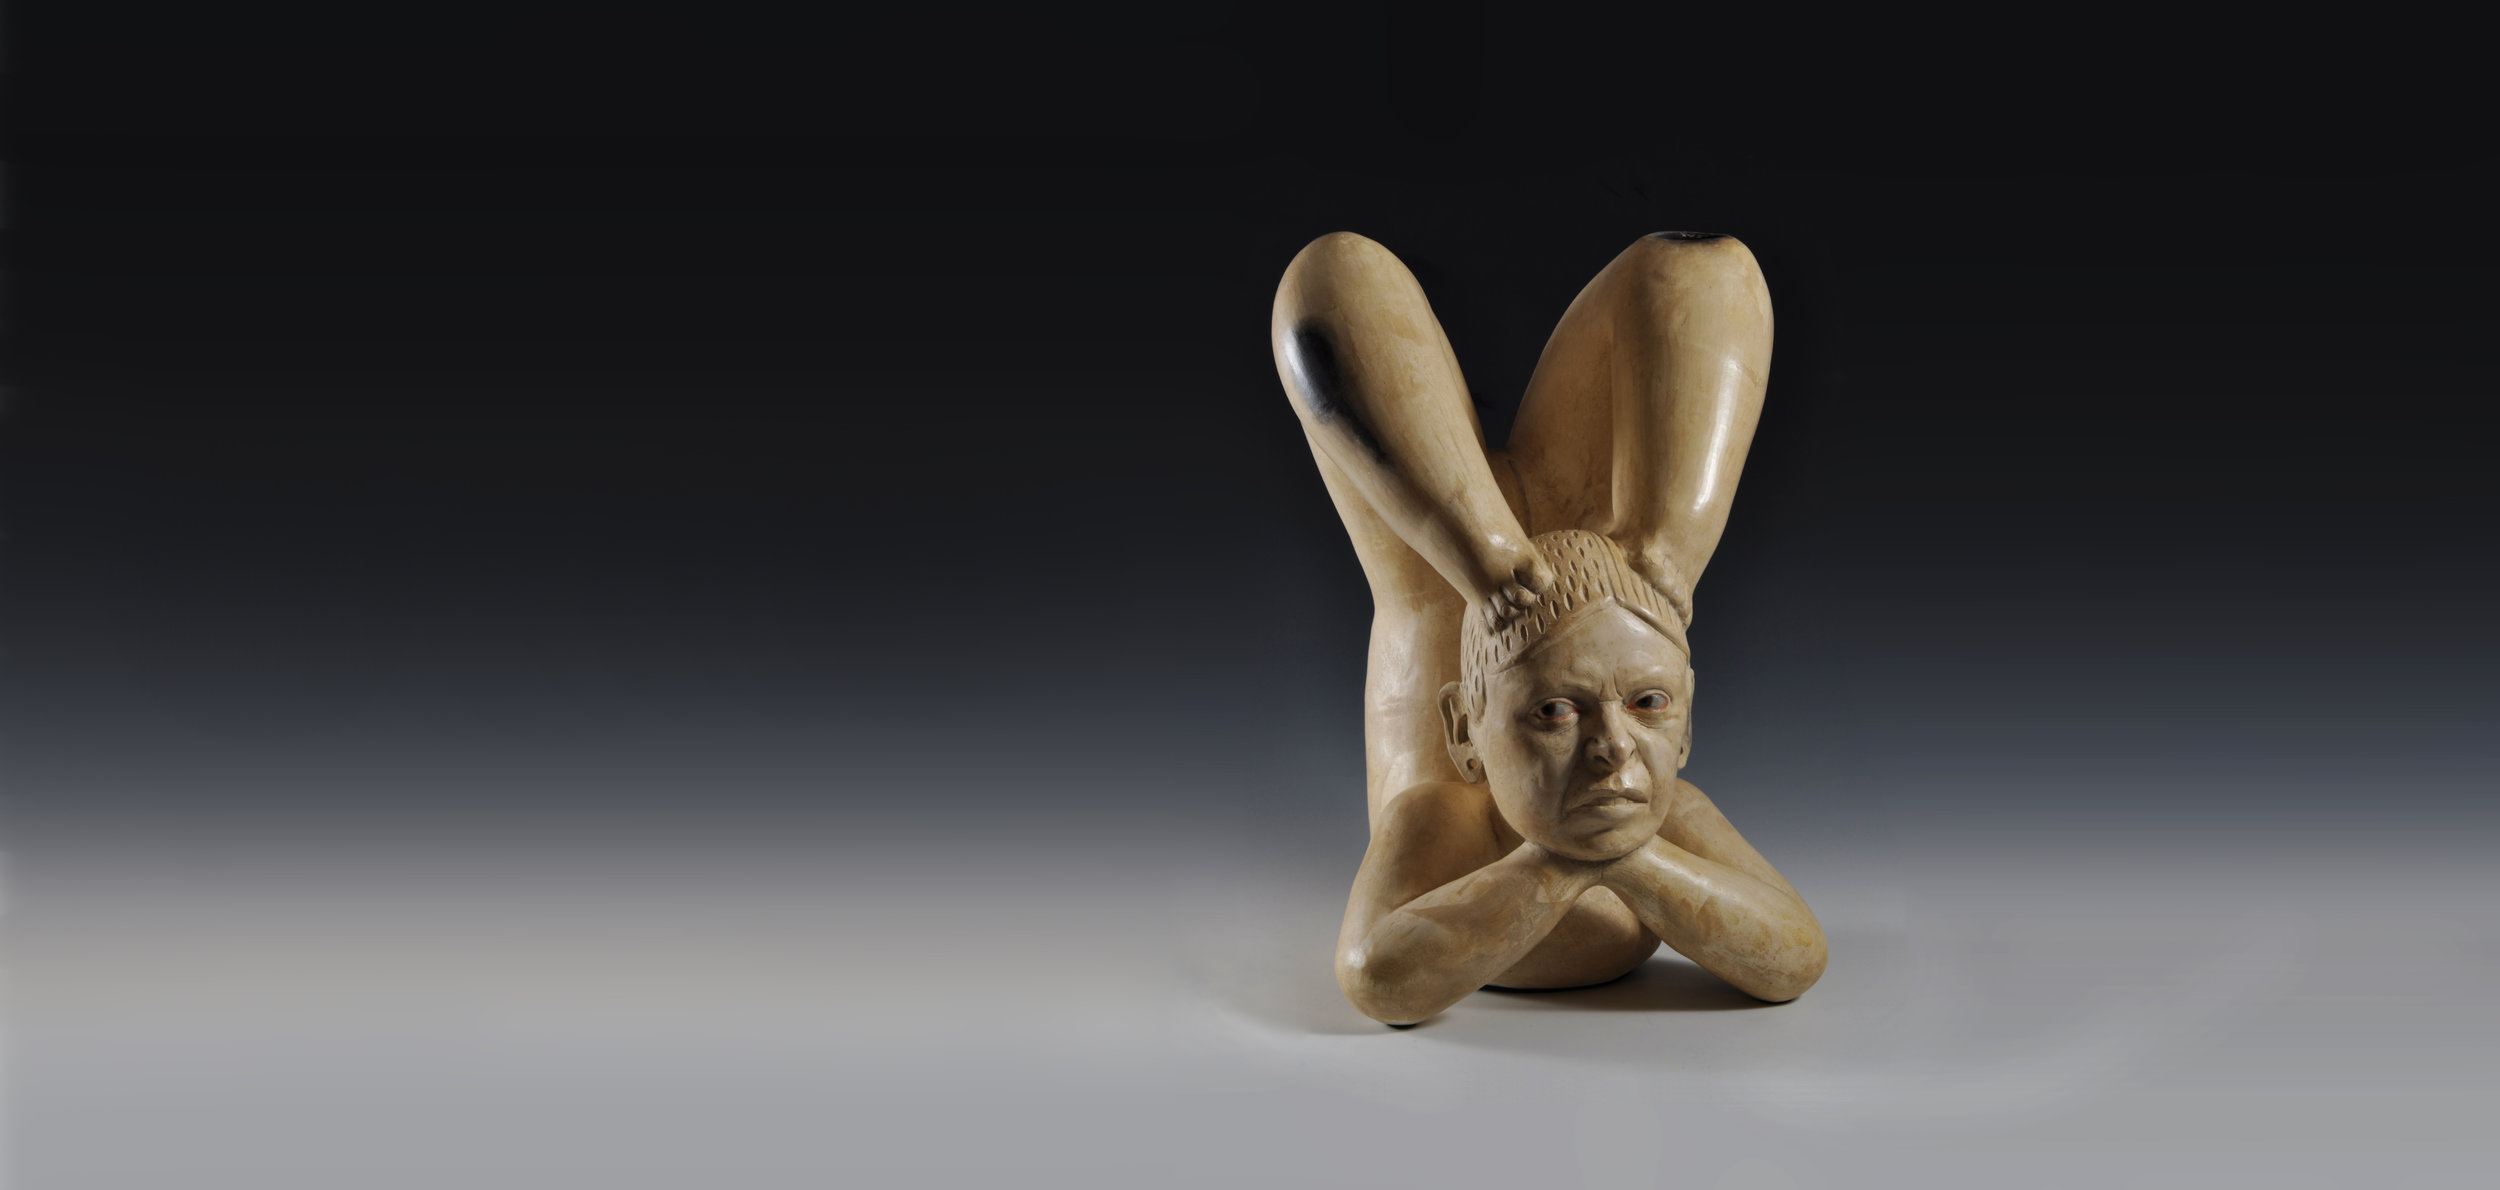 """Kukuli Velardes- """"India Patarrajada, She will do all the acrobatics the Master orders,"""" Mexico, 1200-1800 BC, 2008, white clay, wax casien paint, resin"""